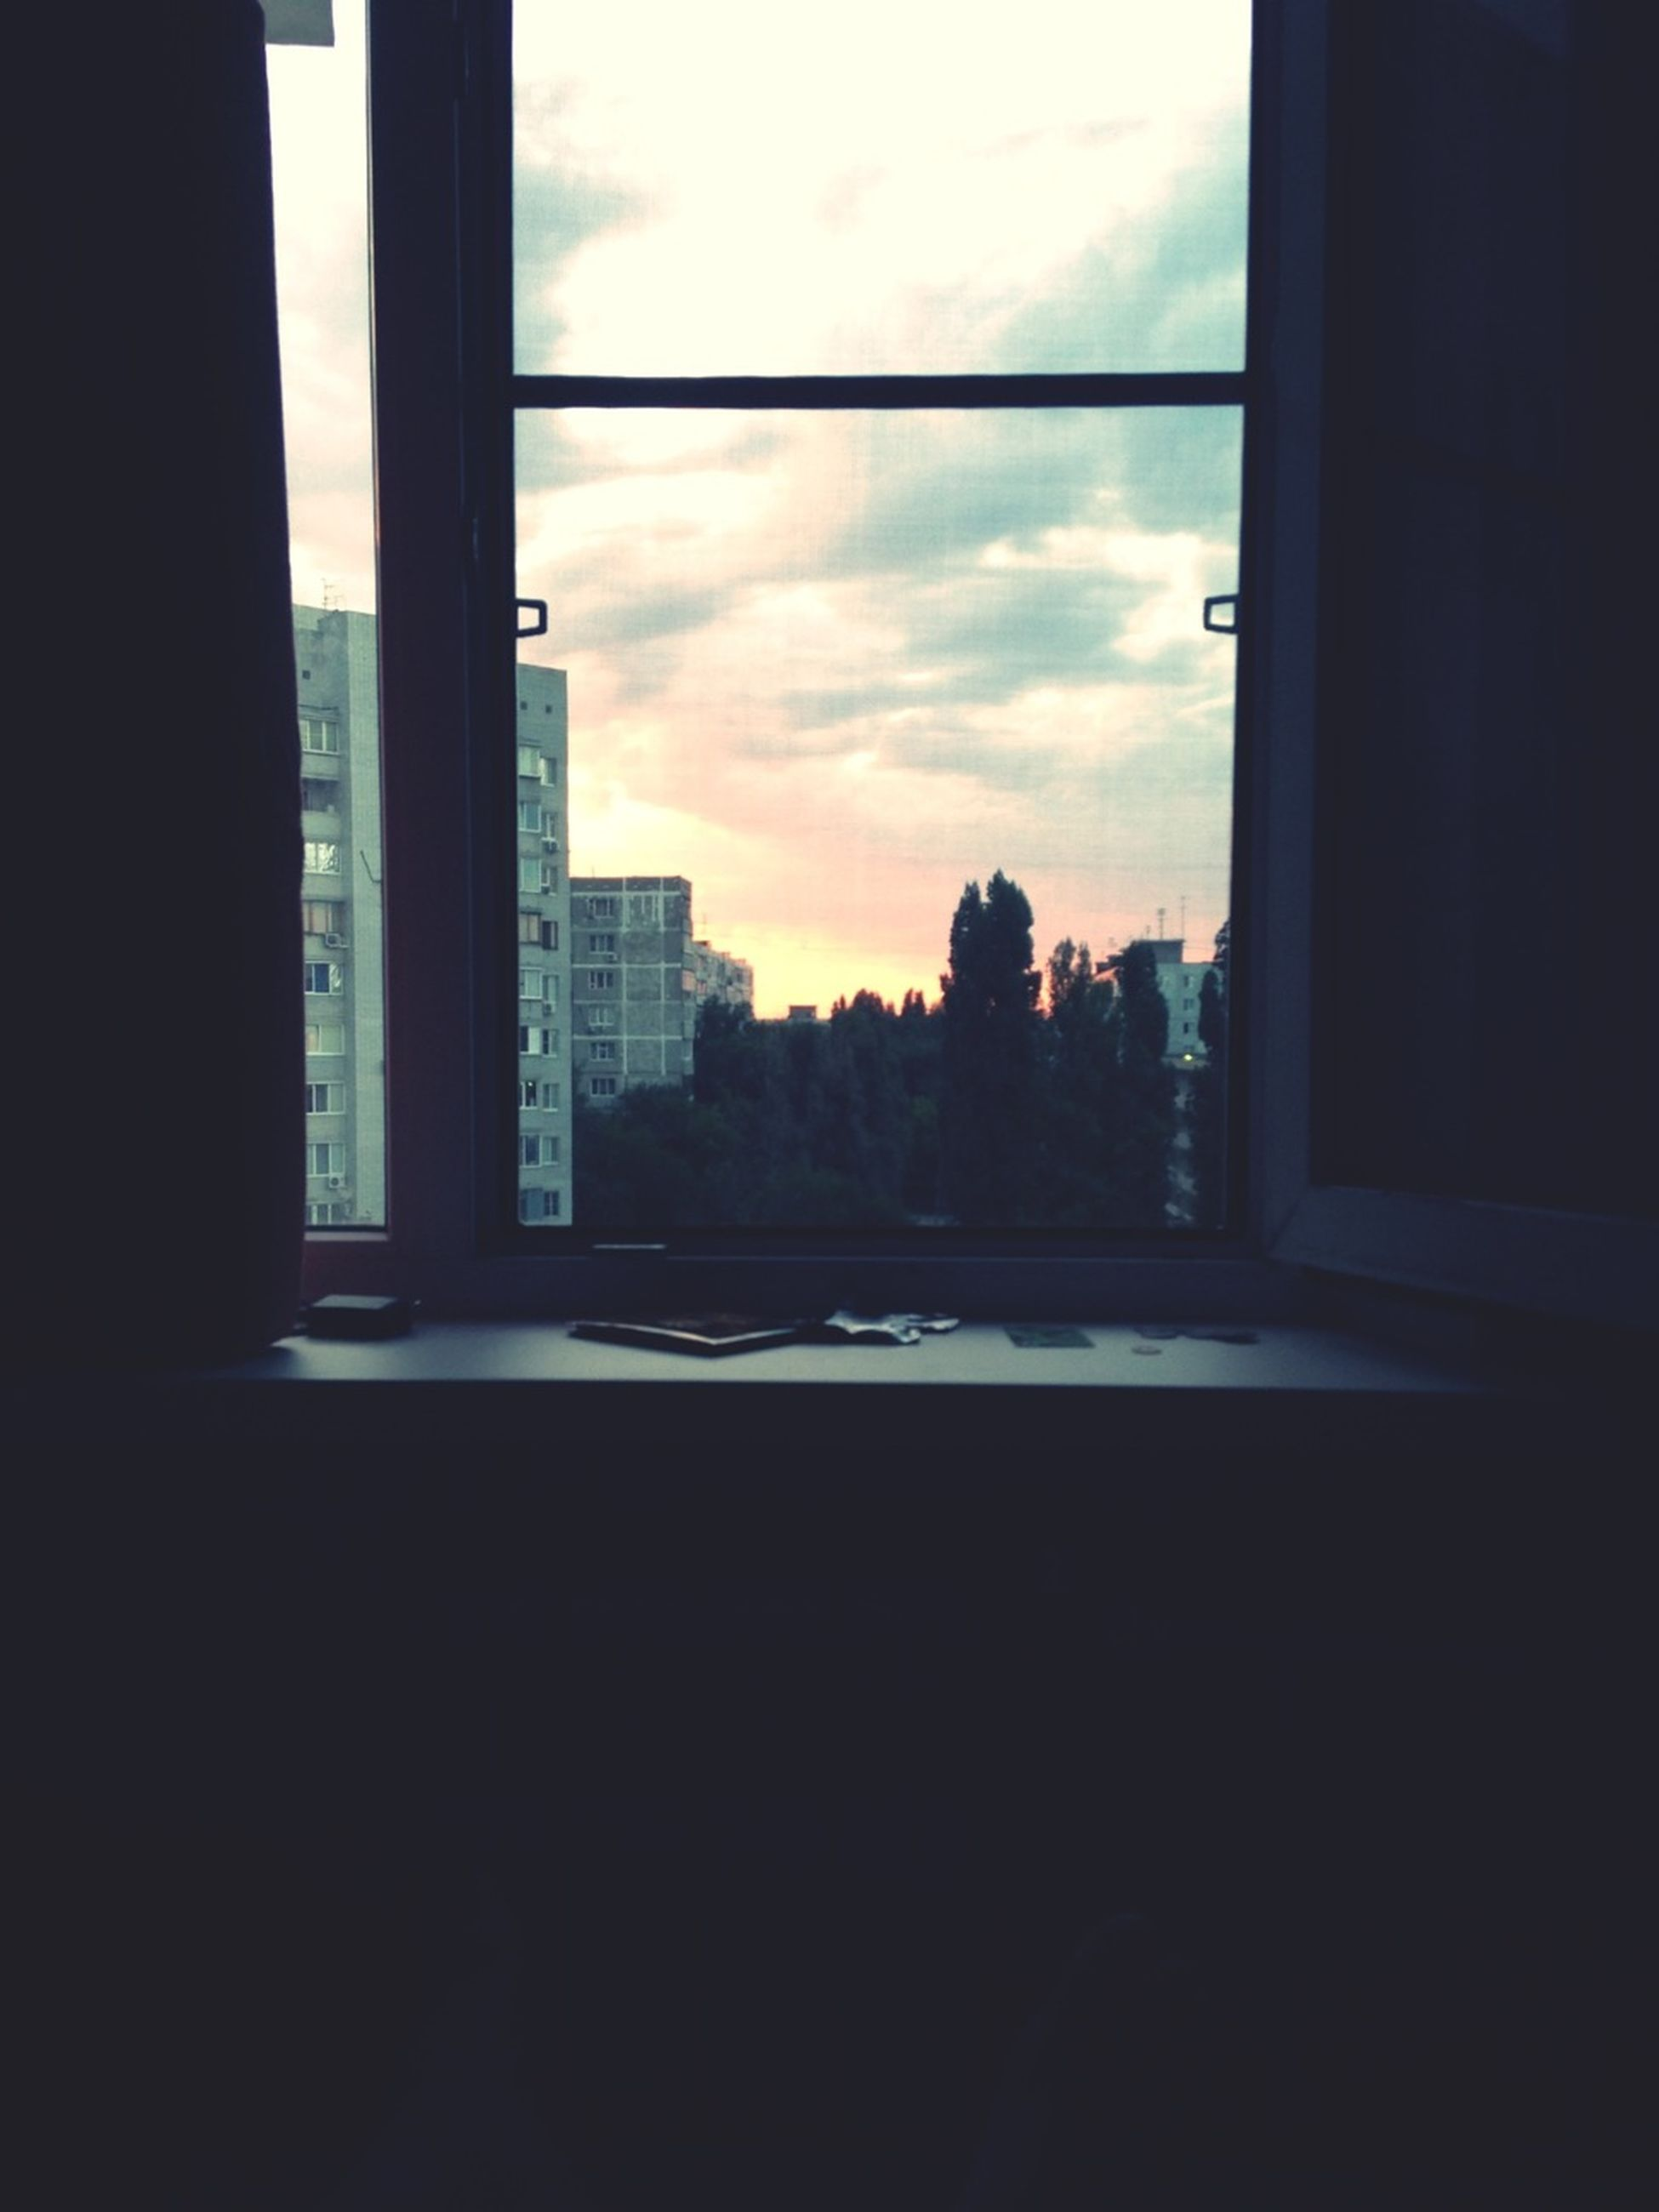 window, architecture, sky, built structure, silhouette, indoors, glass - material, building exterior, transparent, dark, cloud - sky, sunset, cloud, looking through window, city, sunlight, no people, building, tree, house